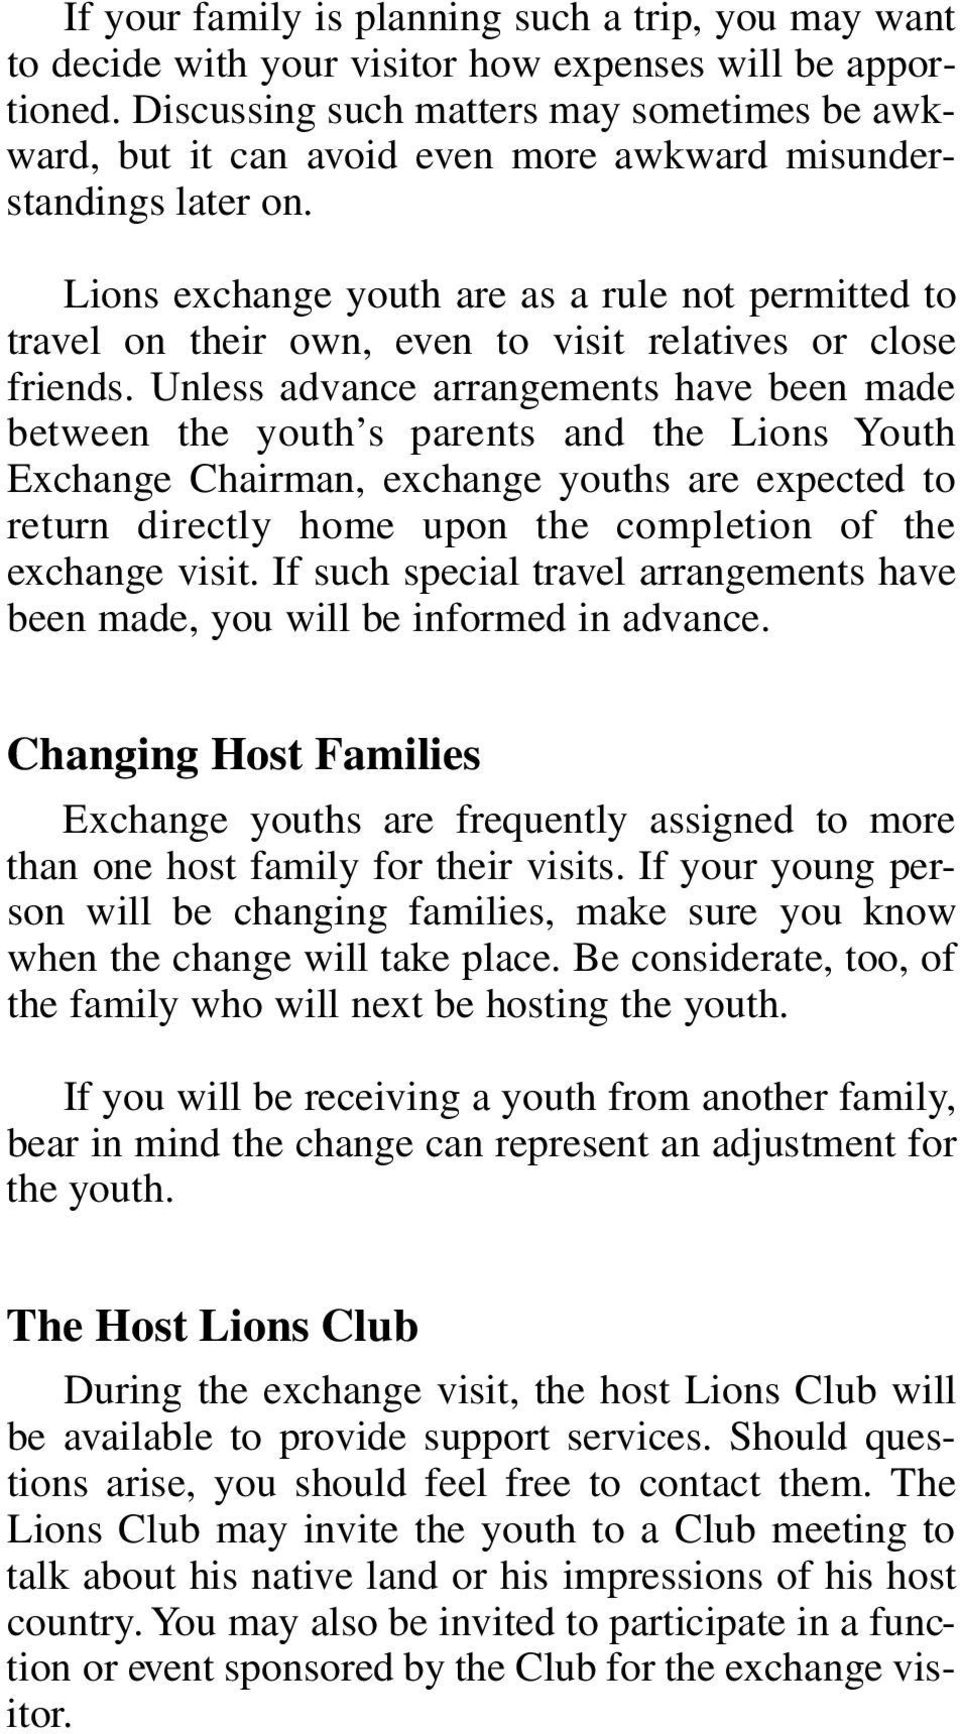 Lions exchange youth are as a rule not permitted to travel on their own, even to visit relatives or close friends.